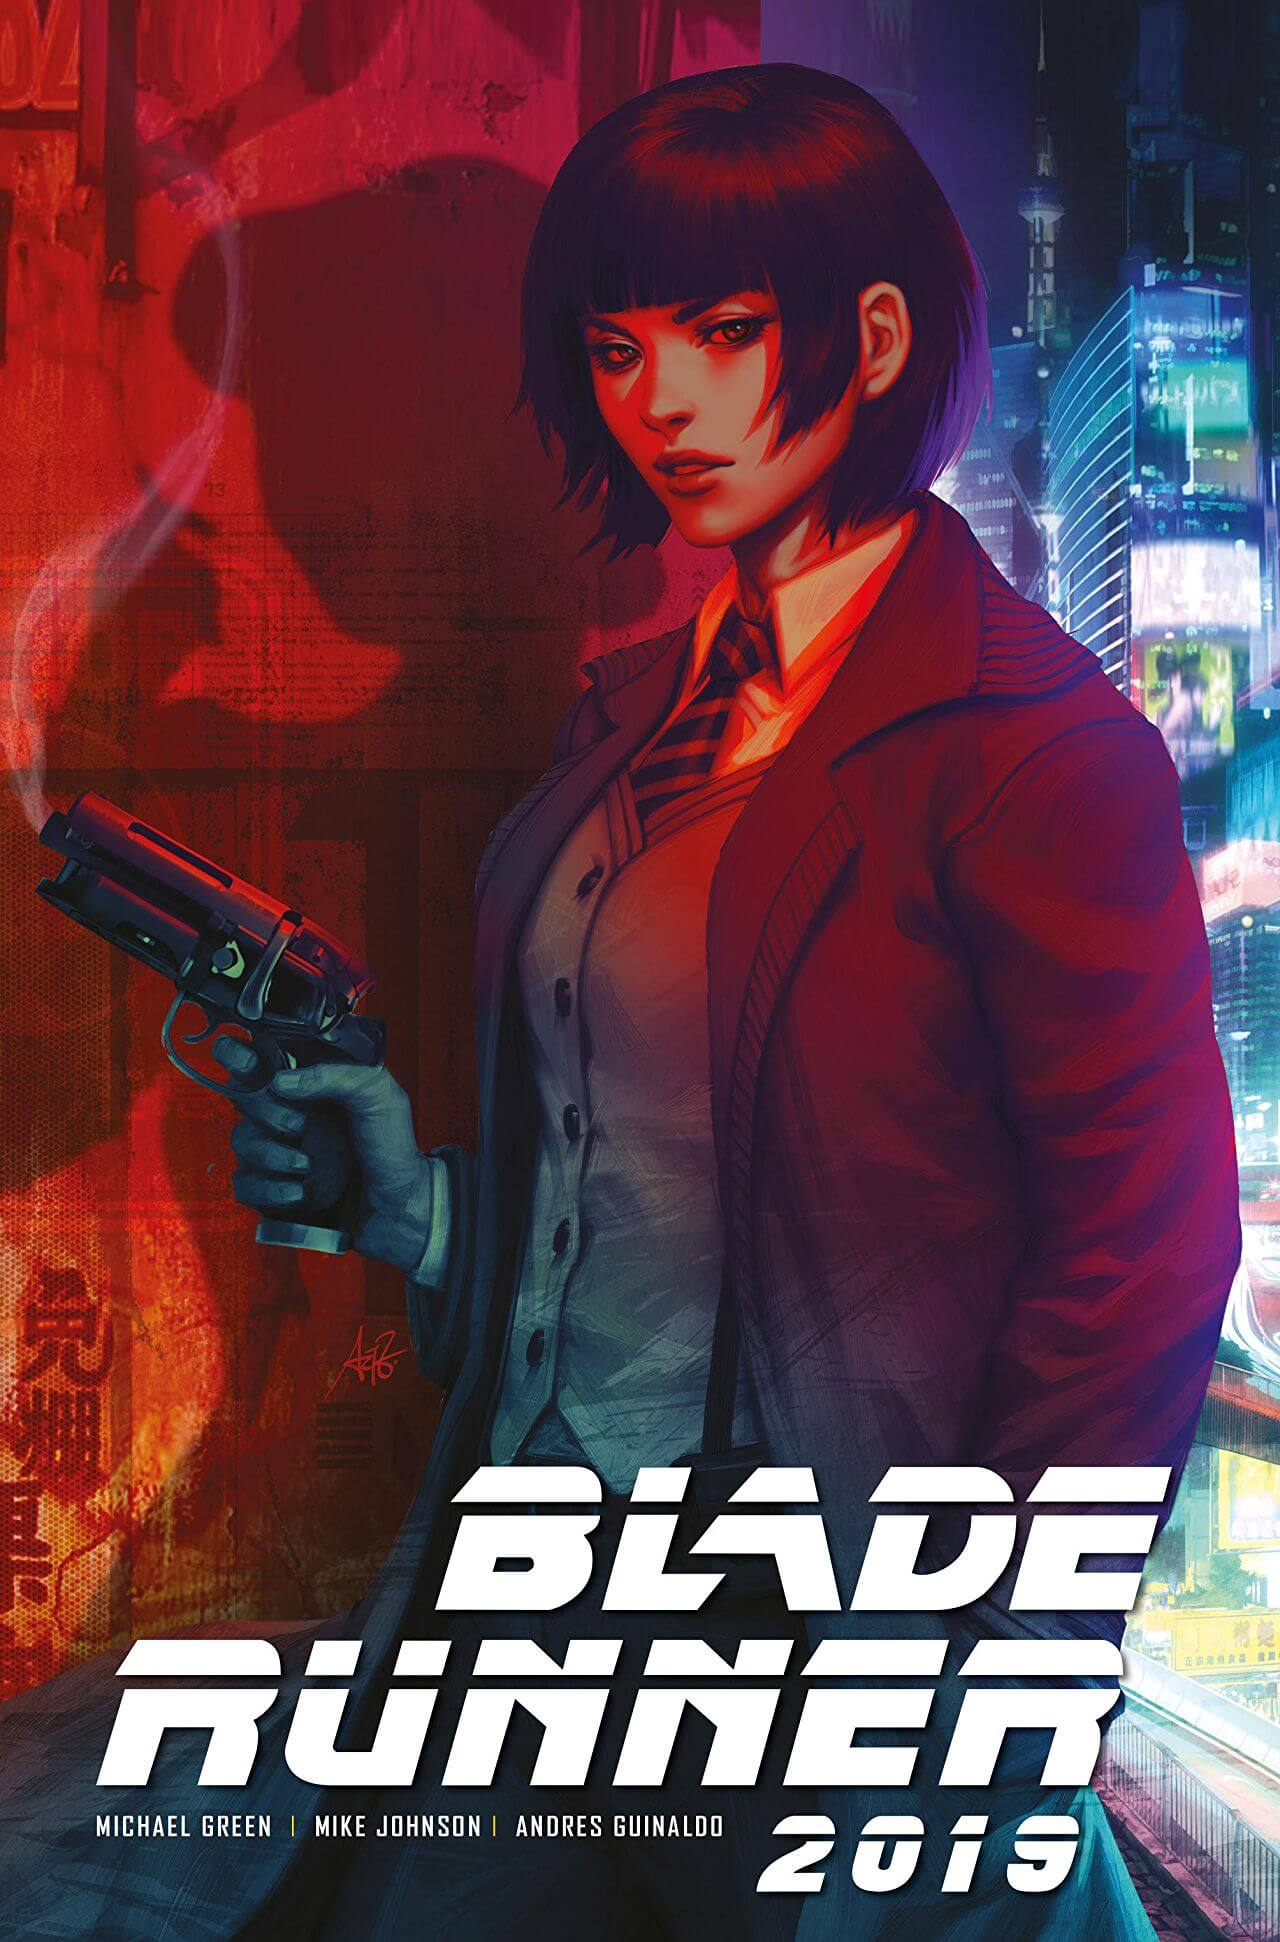 Cover for Blade Runner 2019 #1 - Titan Comics - Jim Campbell (letterer), Michael Green (writer), Andres Guinaldo (artist), Mike Johnson (writer), Marco Lesko (colorist) - A woman holds a gun in an alley